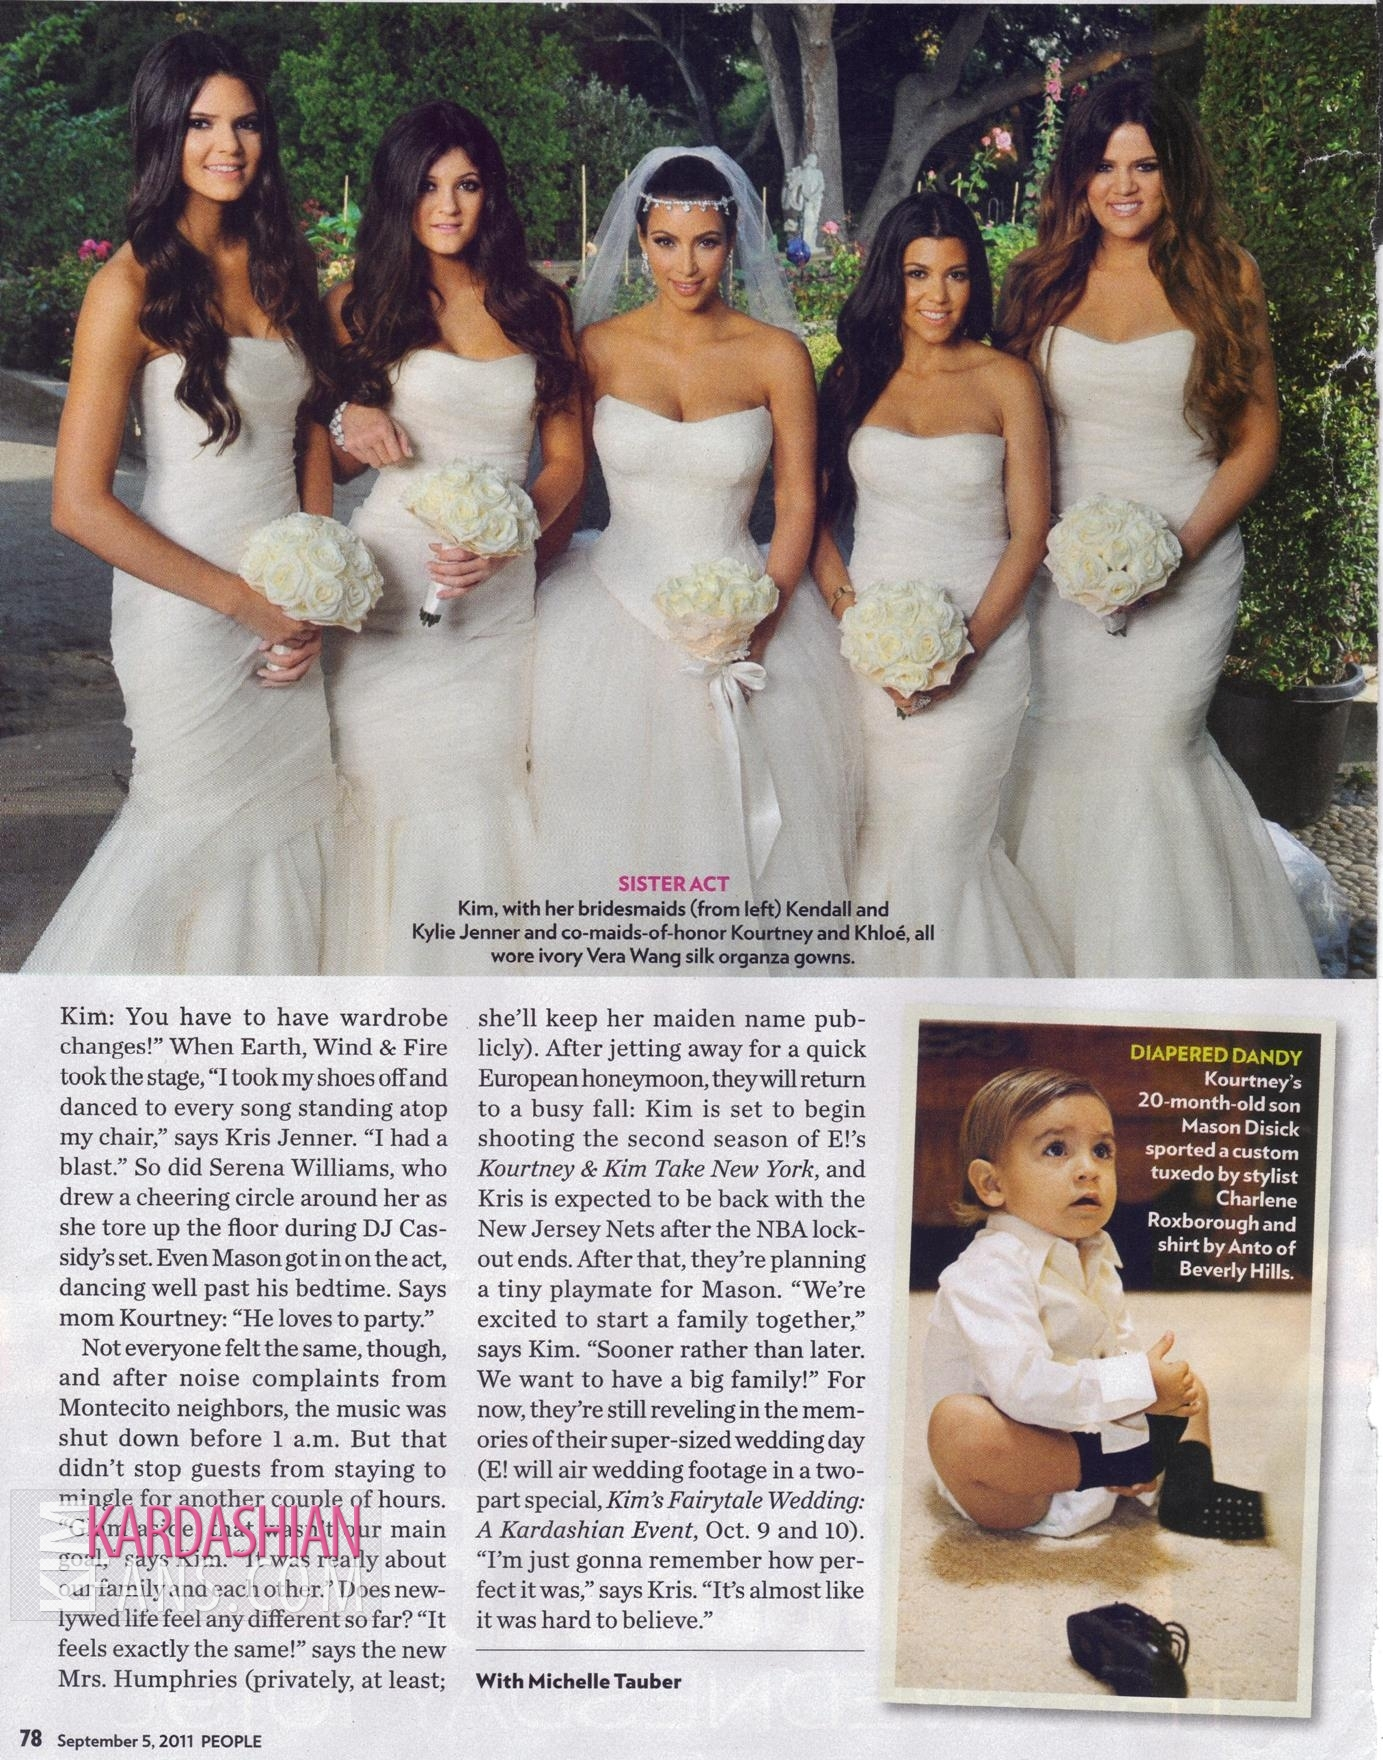 Keeping Up With The Kardashians Images Kim Kardashian People Magazine Wedding Edition Hq Scans Hd Wallpaper And Background Photos